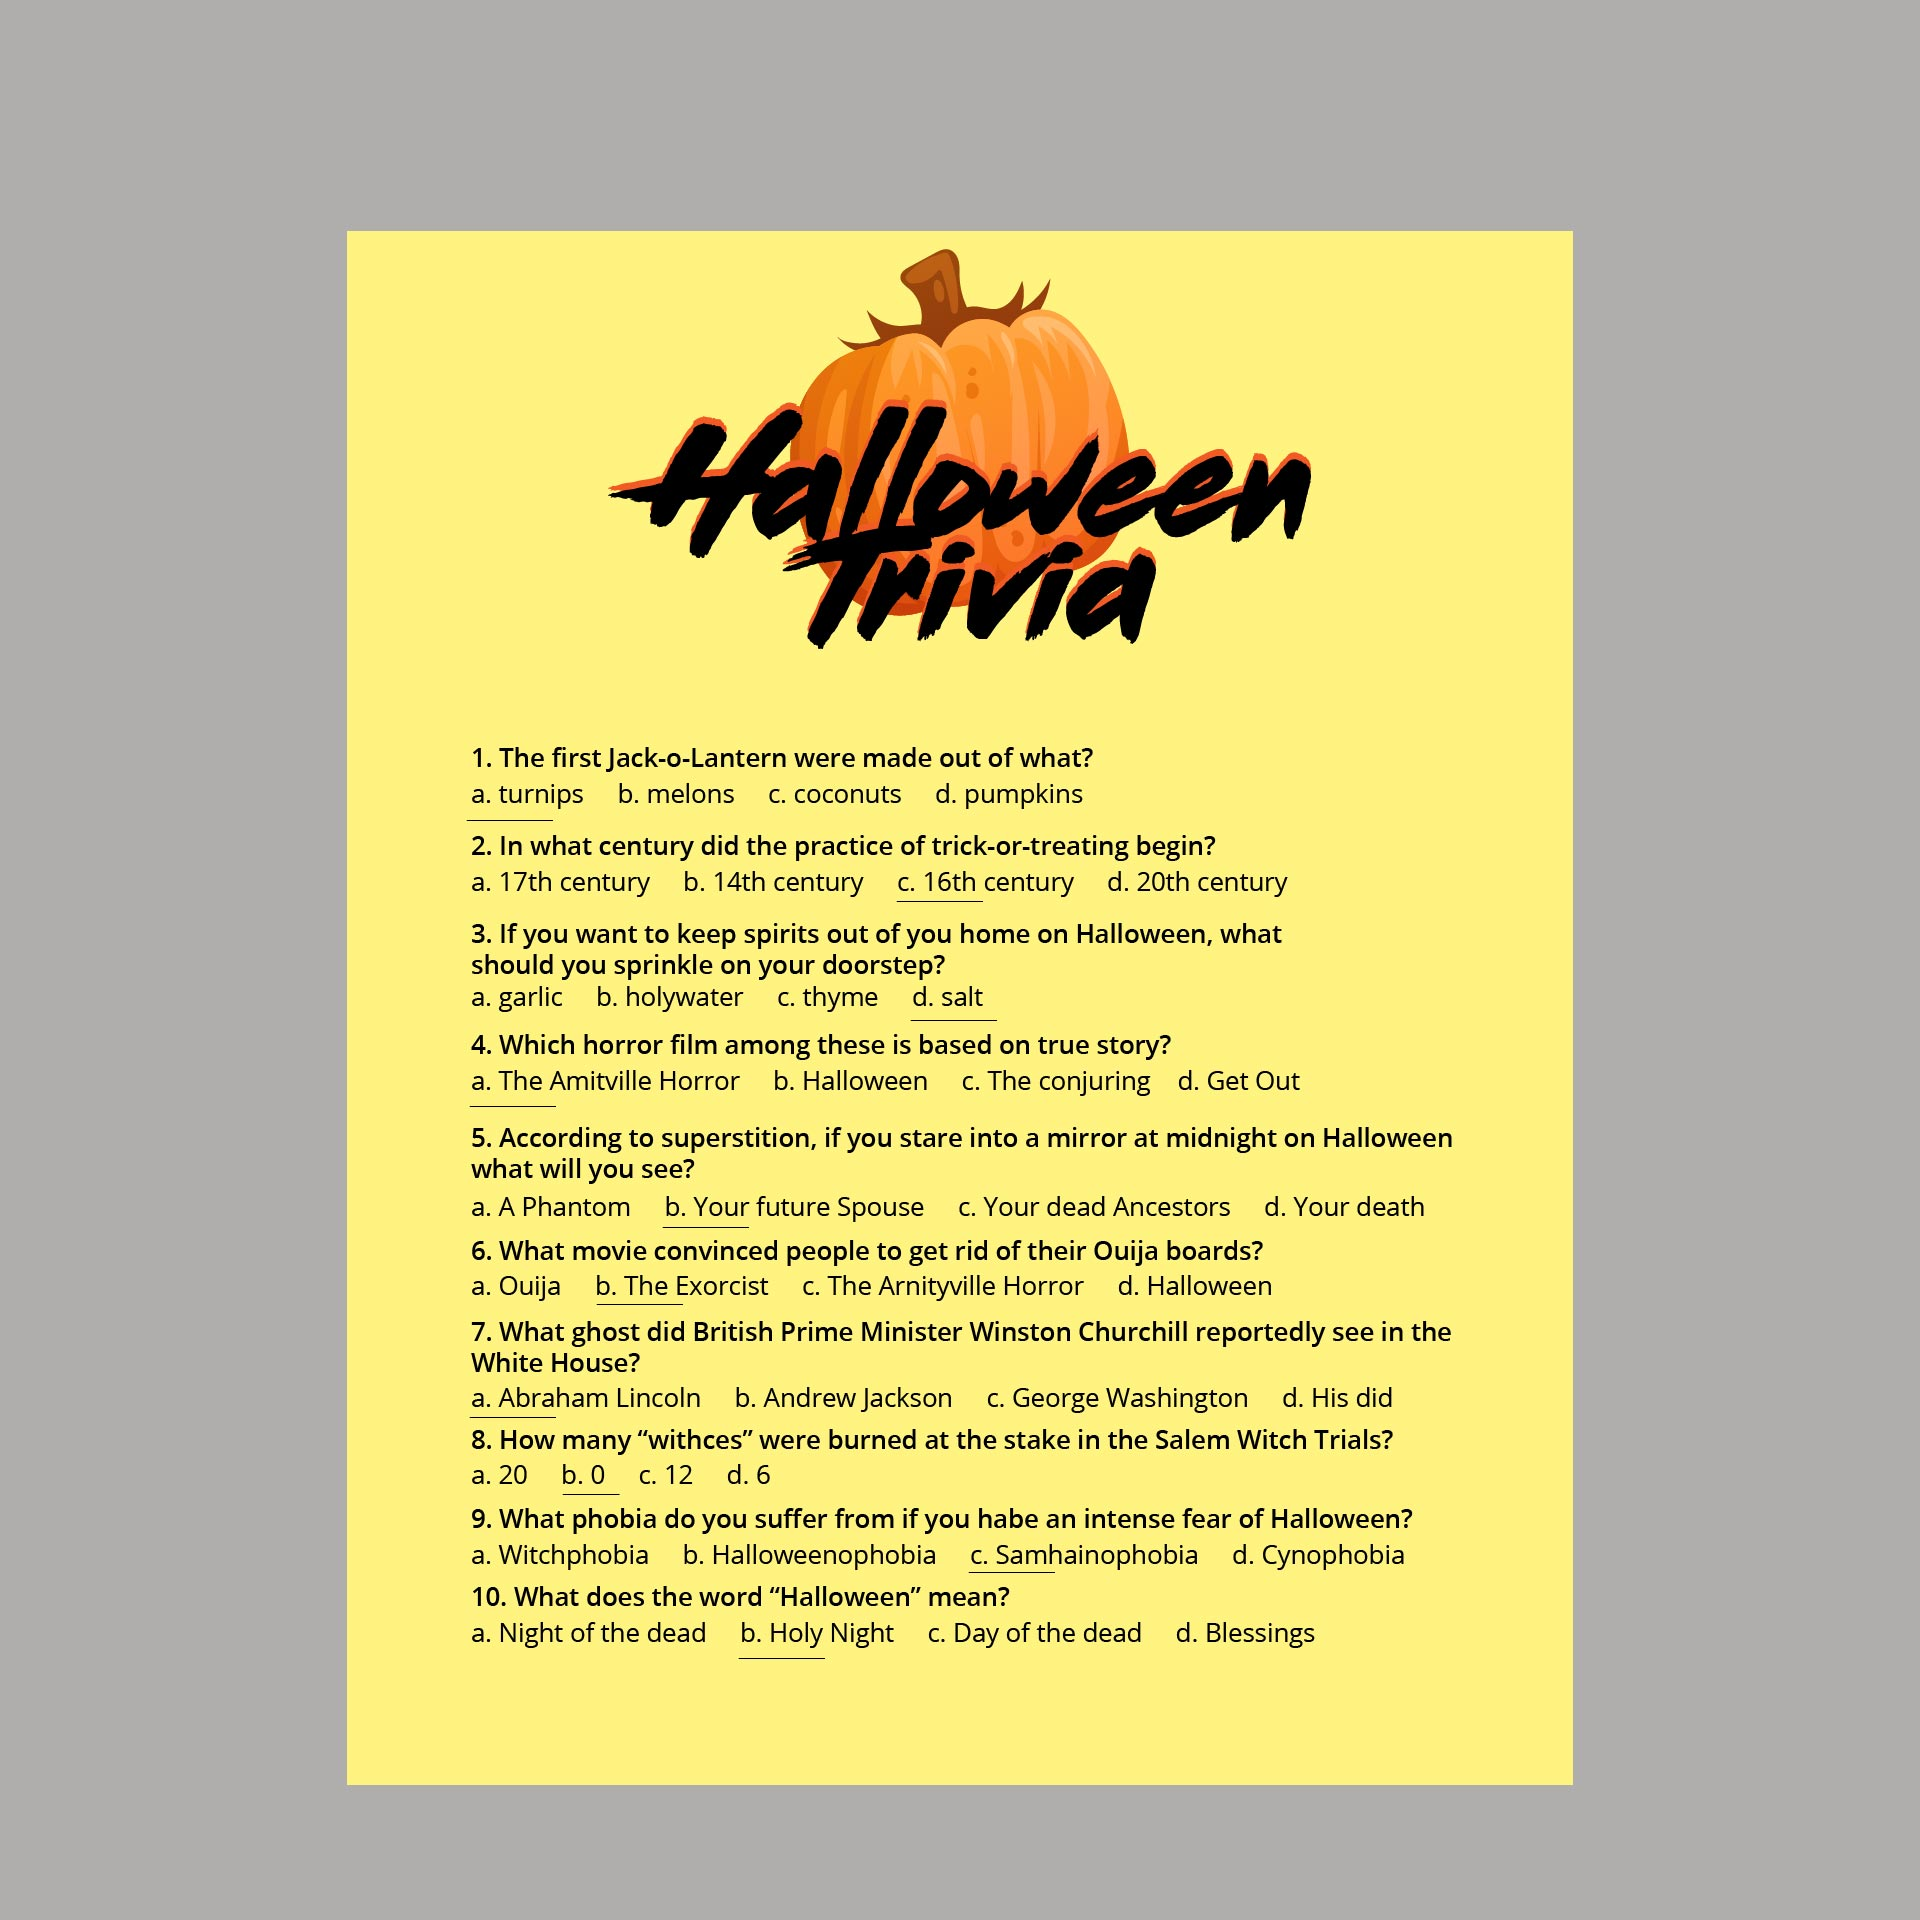 Halloween Trivia Questions And Answers For Adults Printable